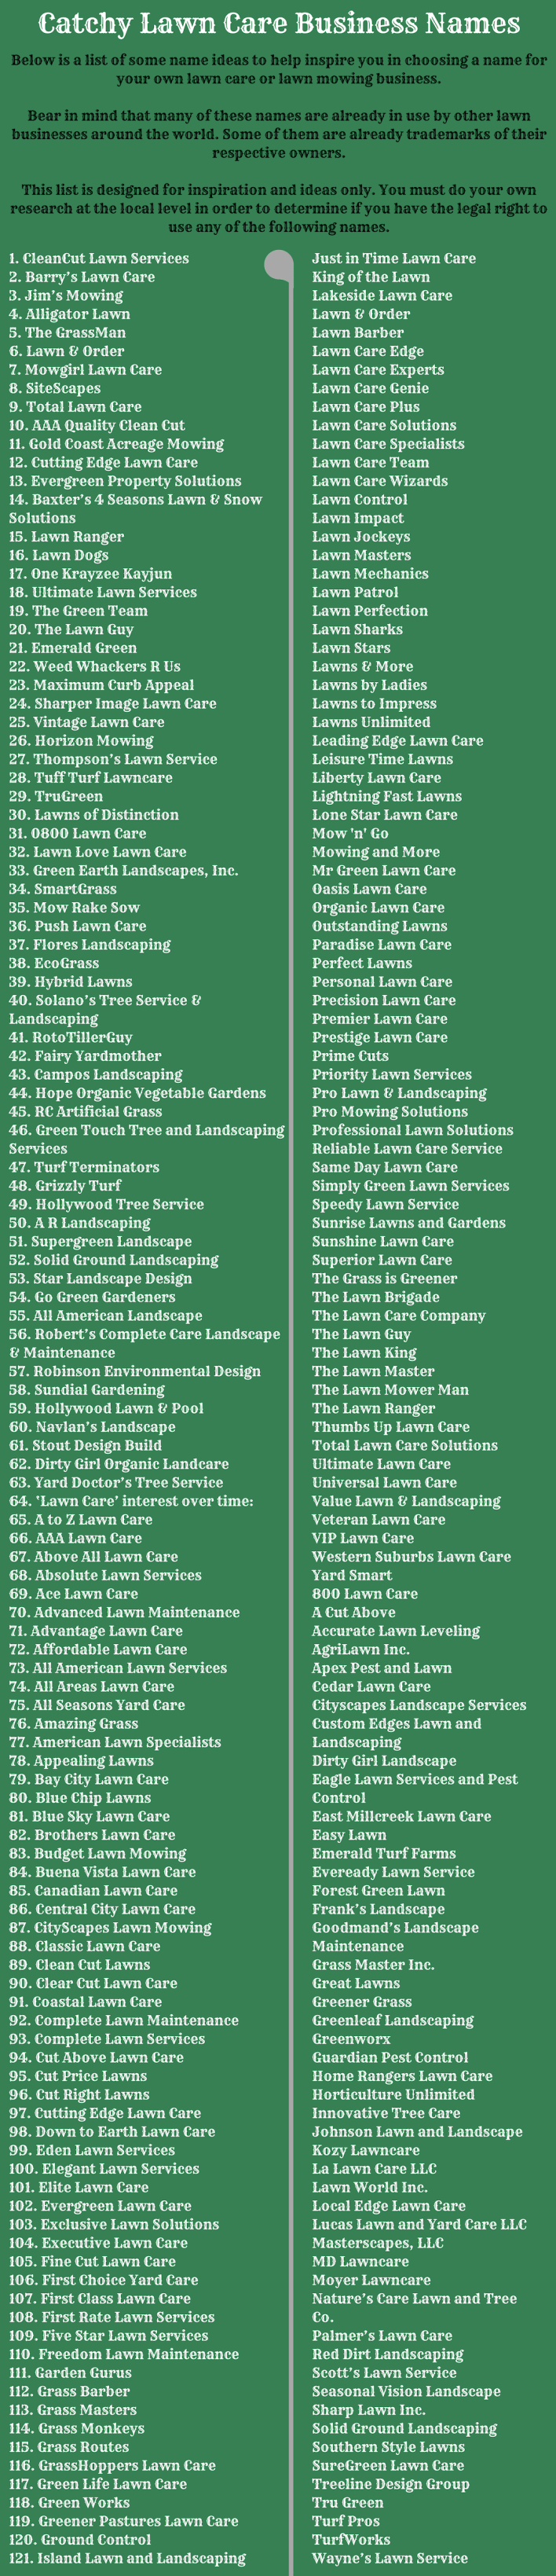 260 Unique Name Ideas For Your Lawn Care Business